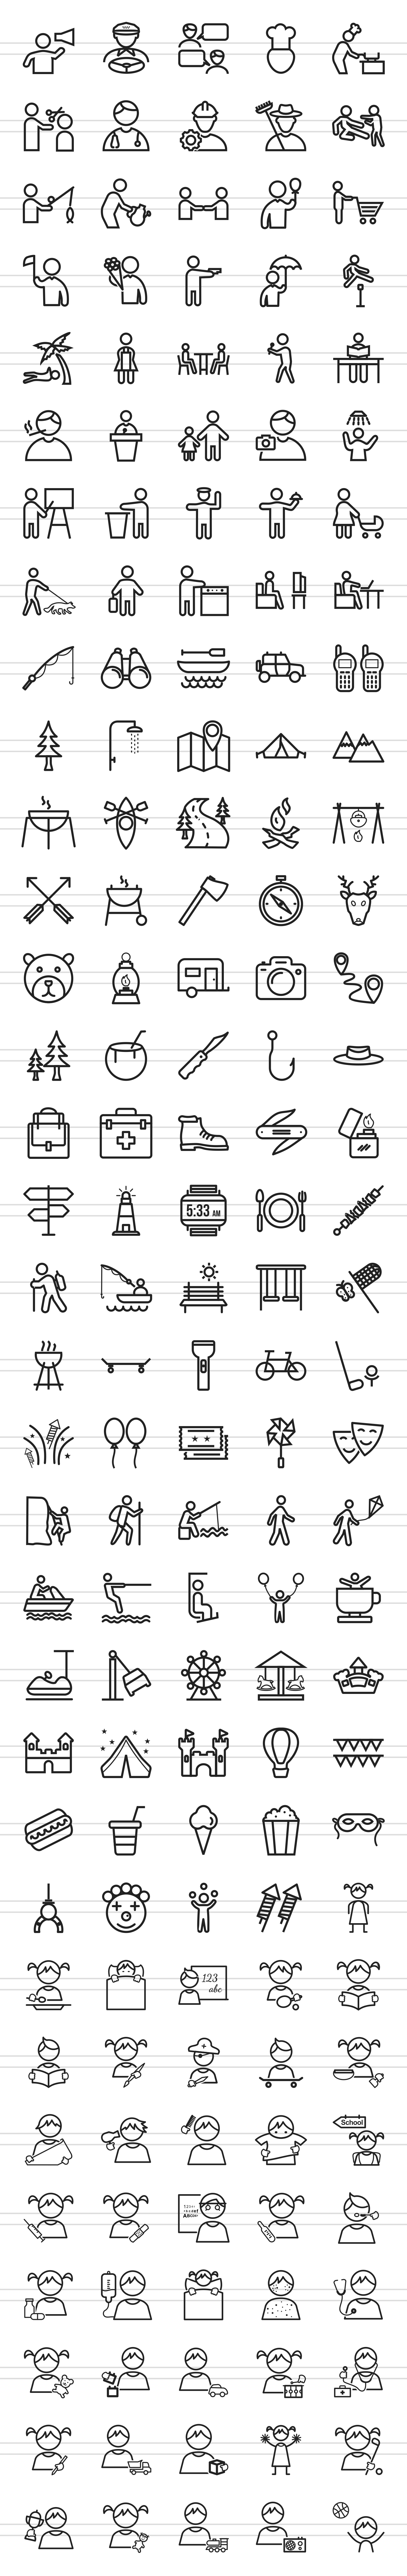 166 Activities Line Icons example image 2